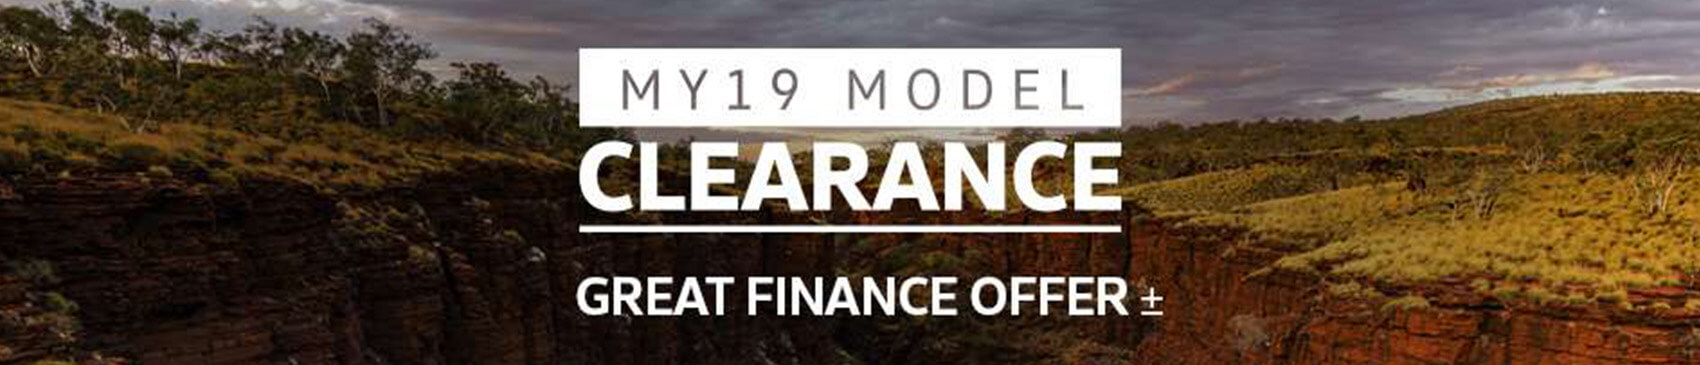 Volkswagen MY19 Model Clearance. Great Finance Offer